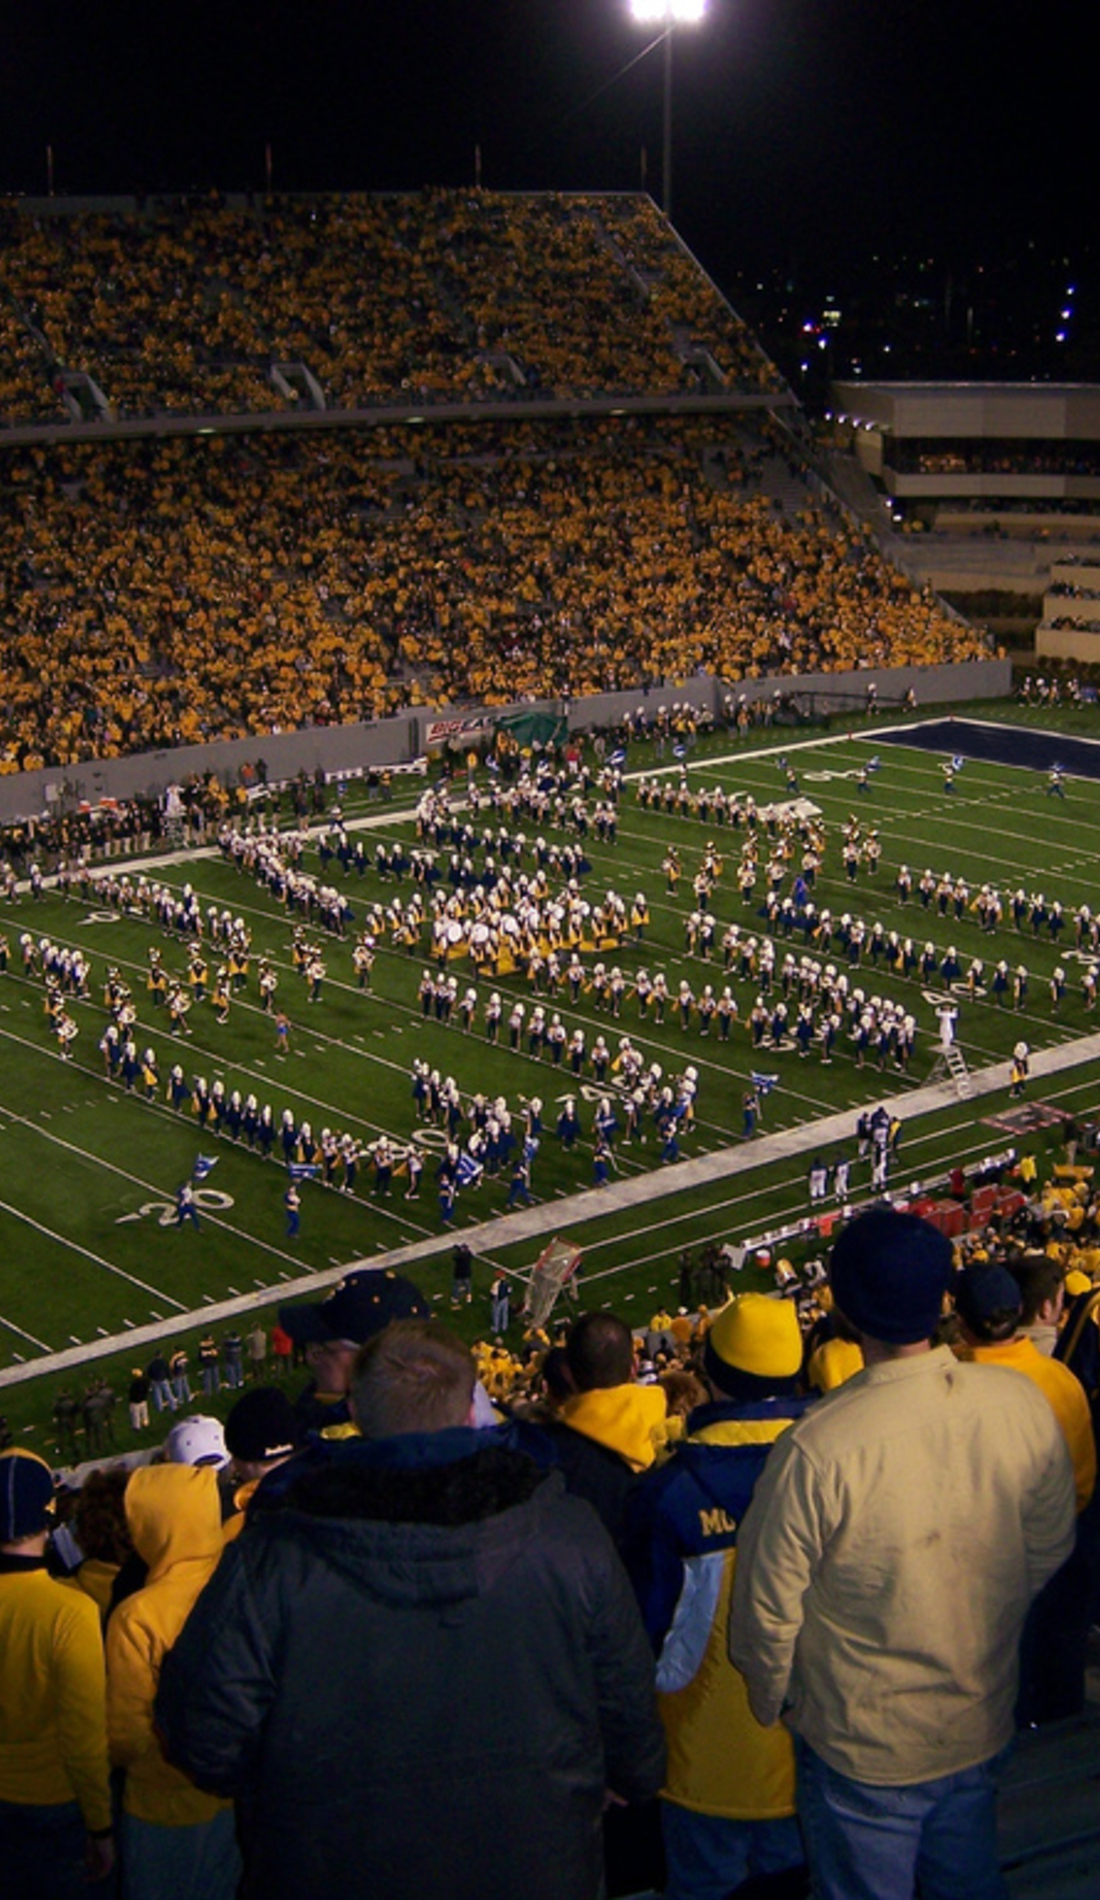 A West Virginia Mountaineers Football live event